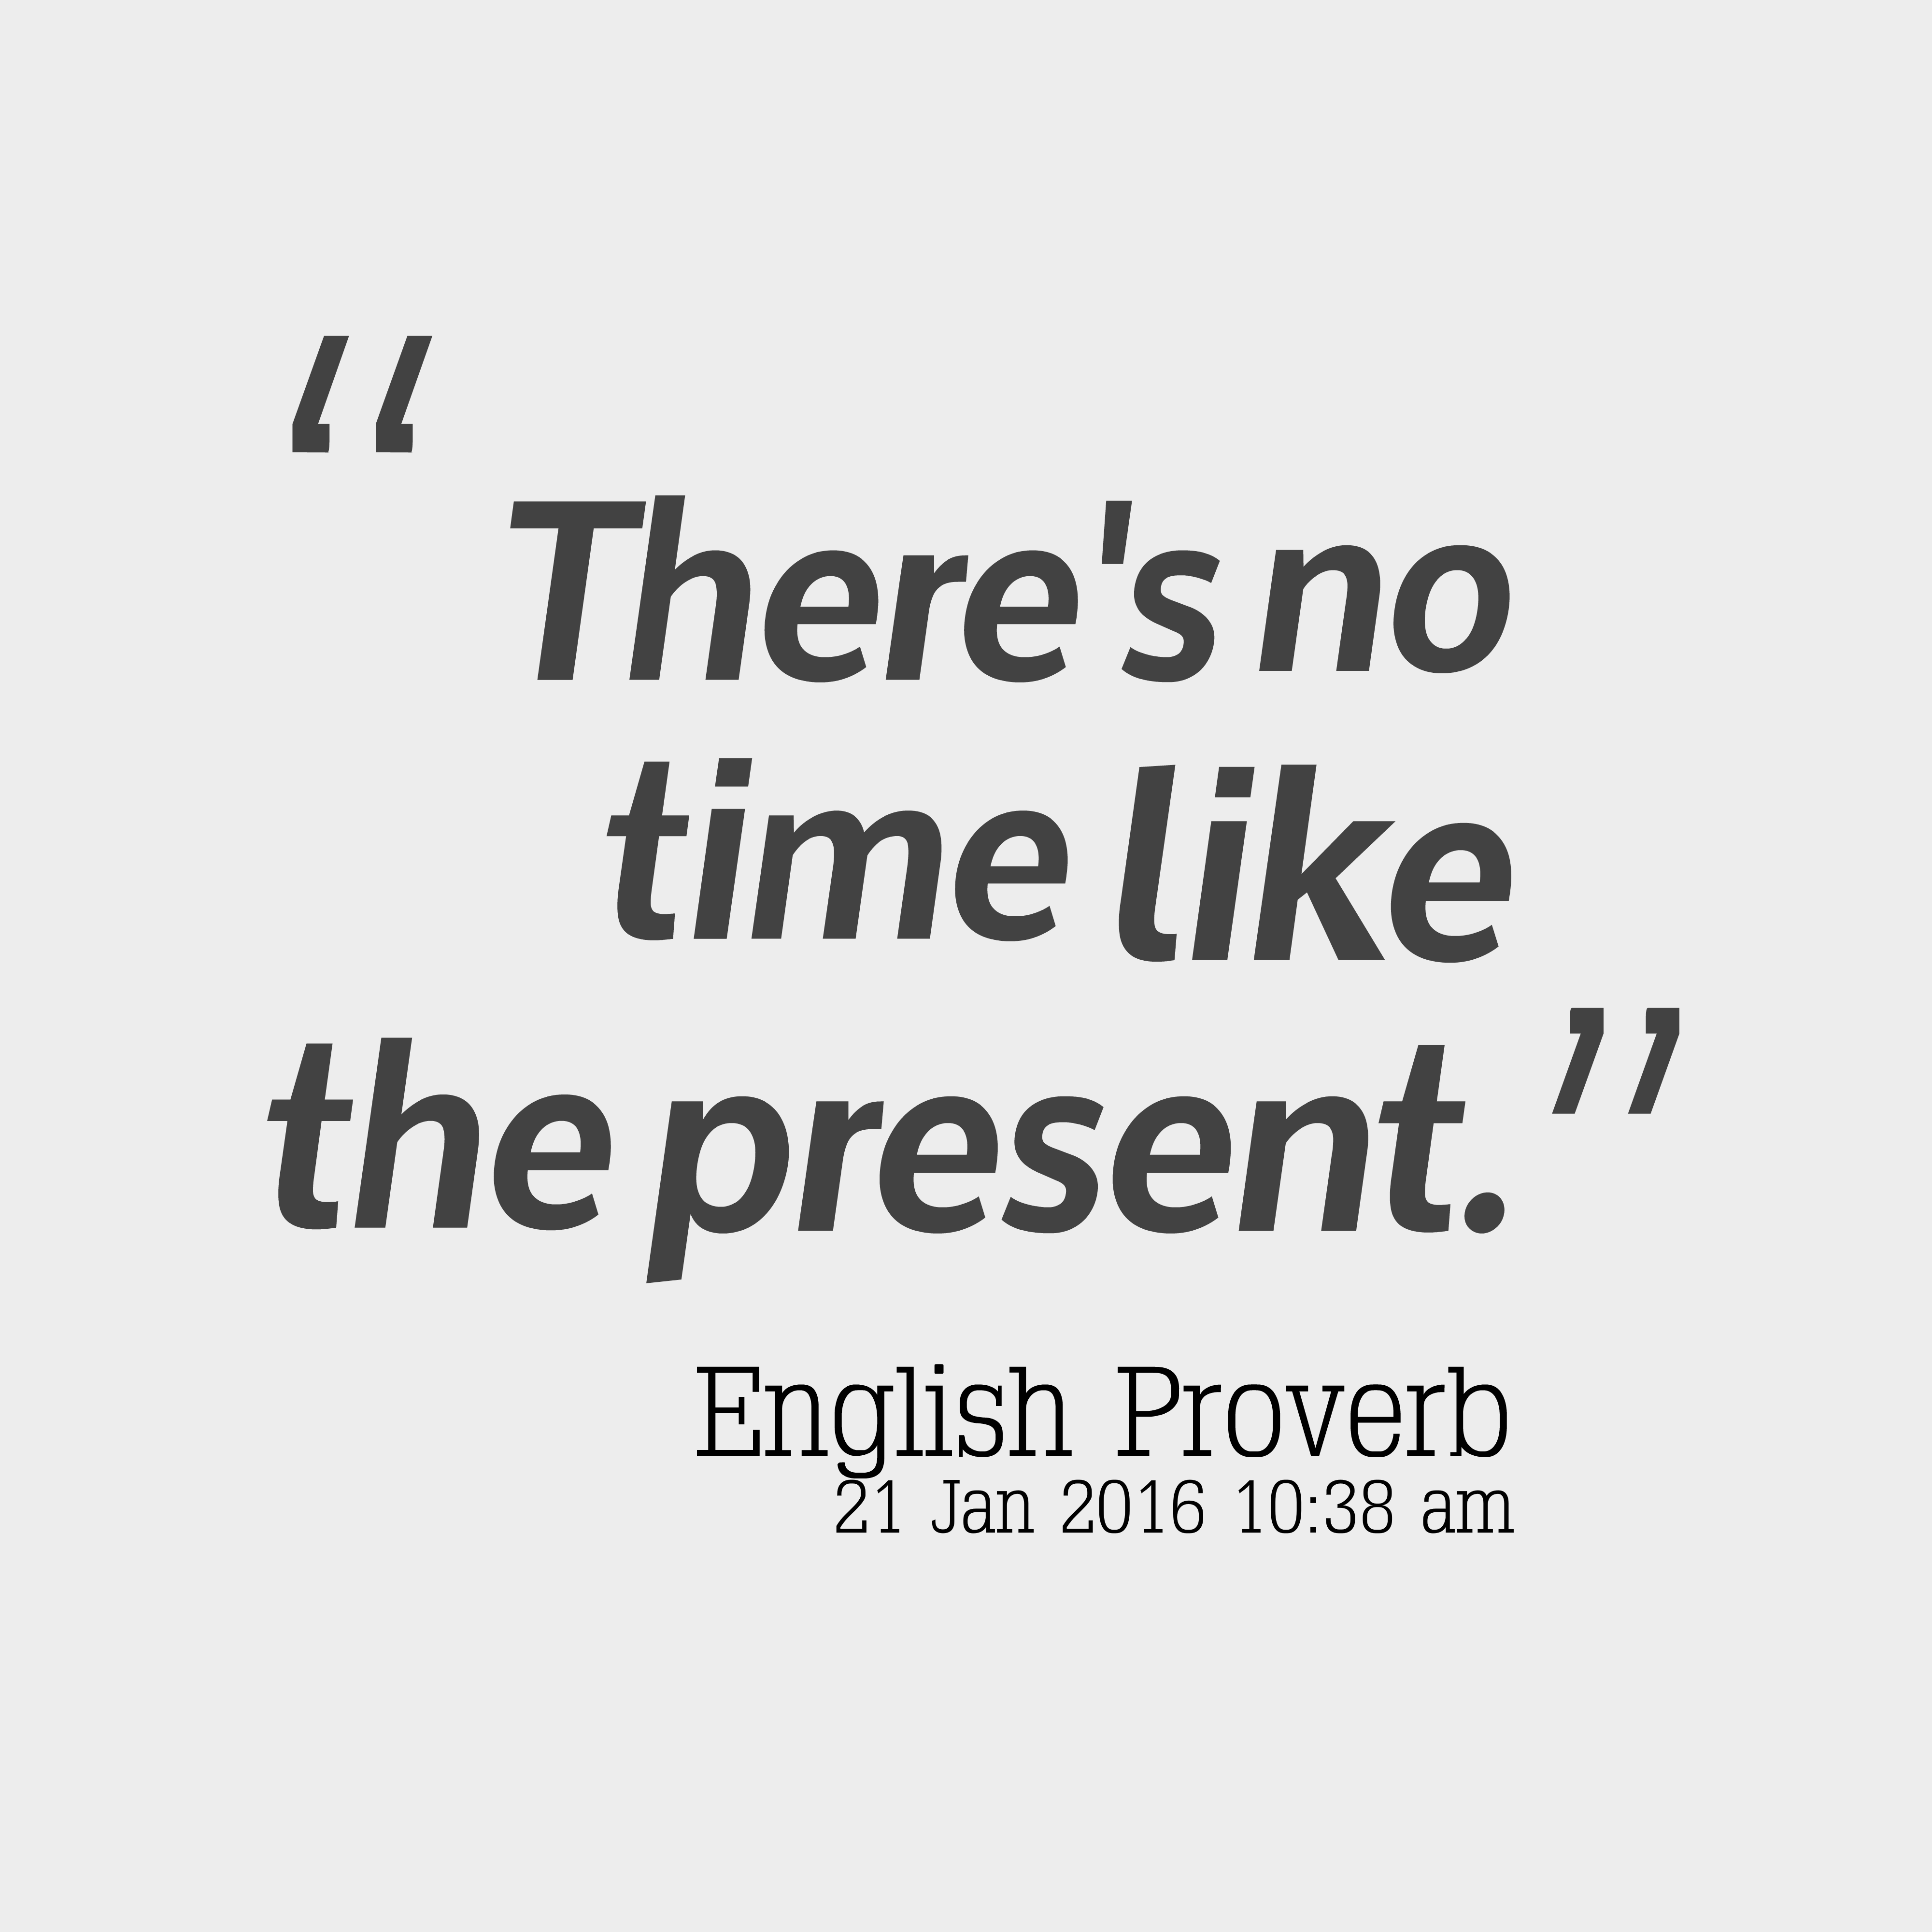 picture english proverb about time quotescovercom